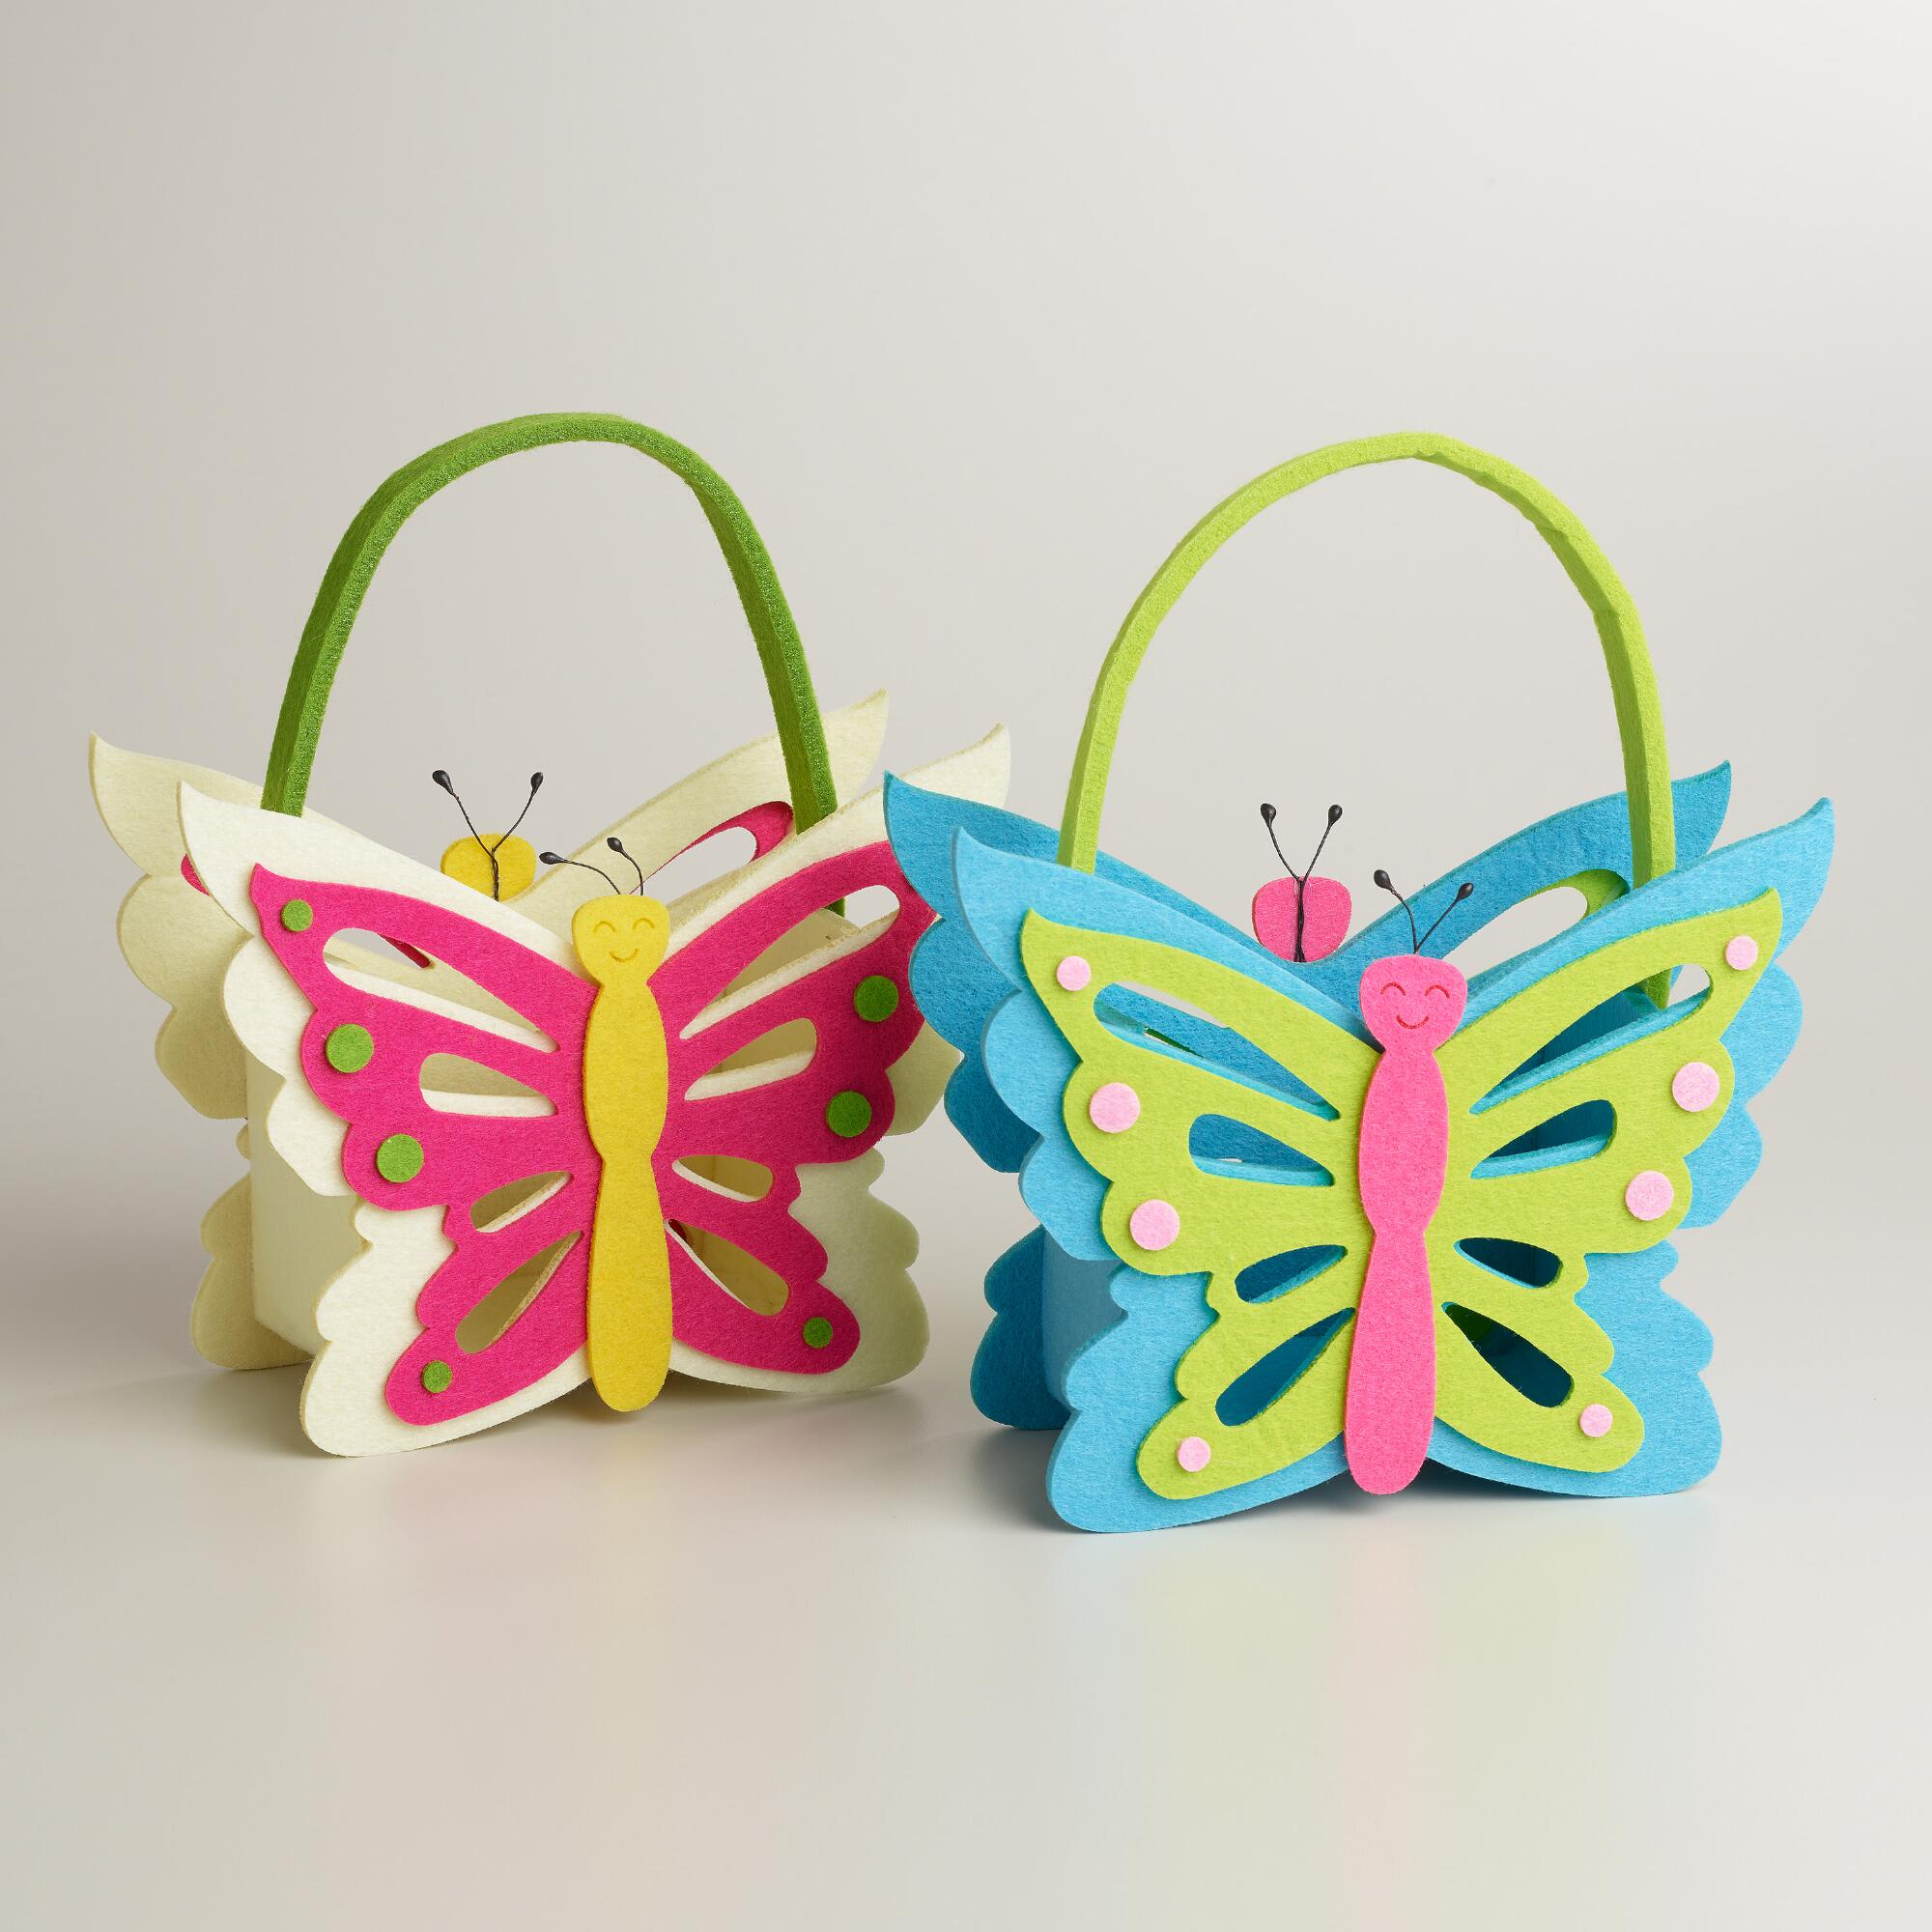 Large Butterfly Felt Easter Basket, Set of 2 | World Market